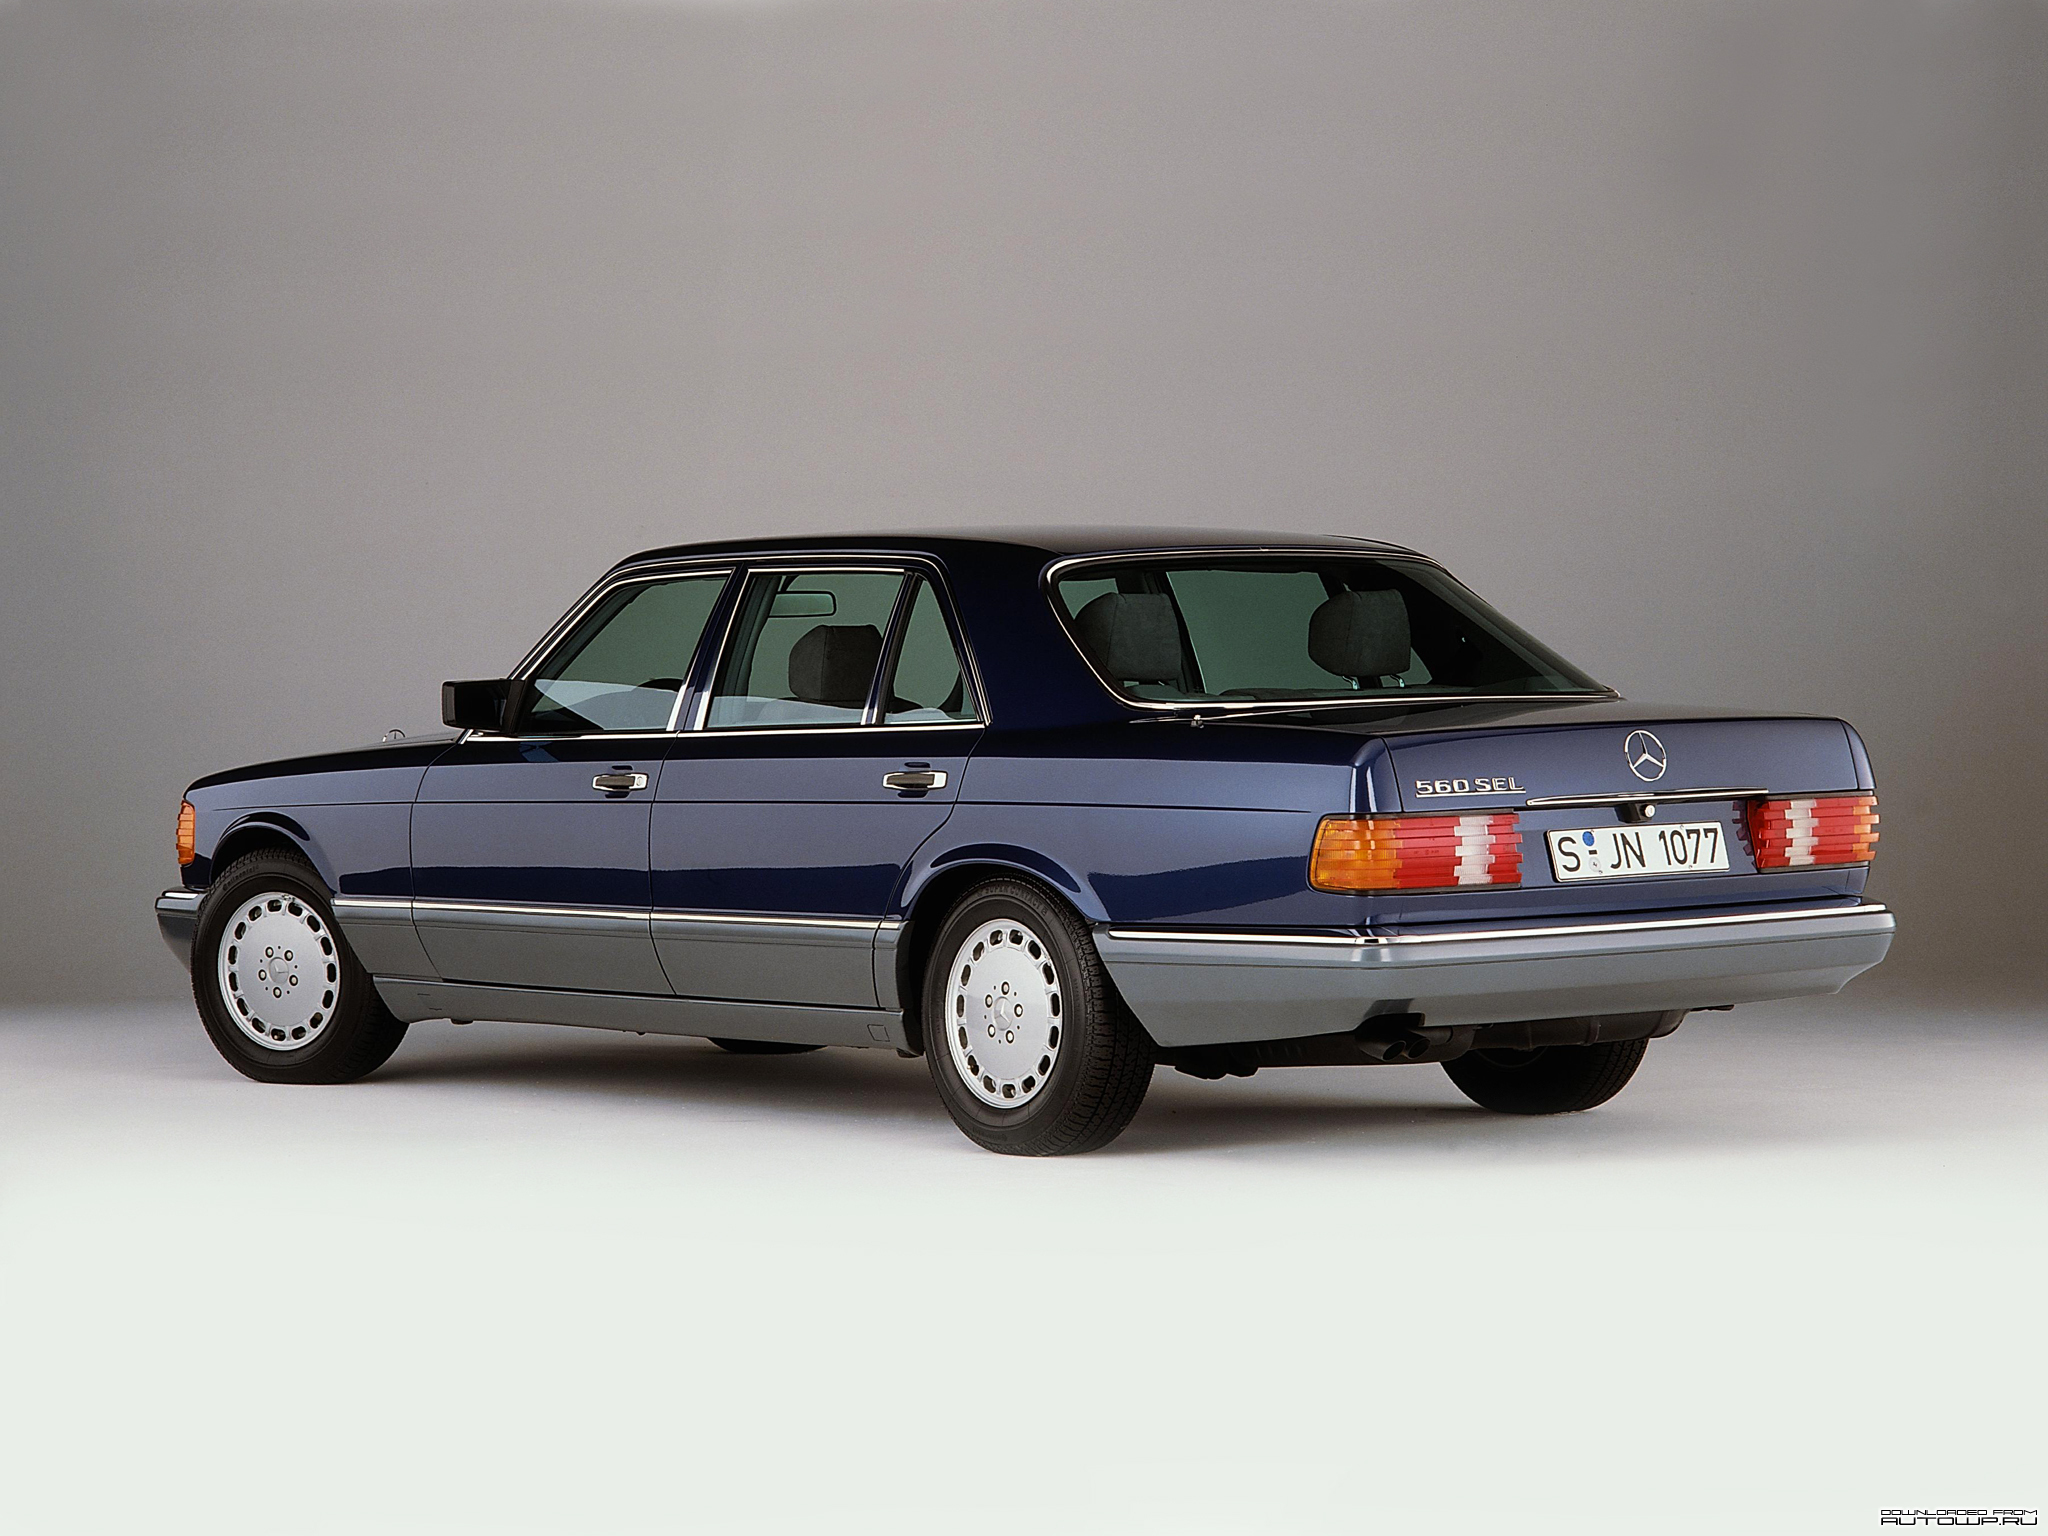 You can vote for this Mercedes-Benz S-Class W126 photo